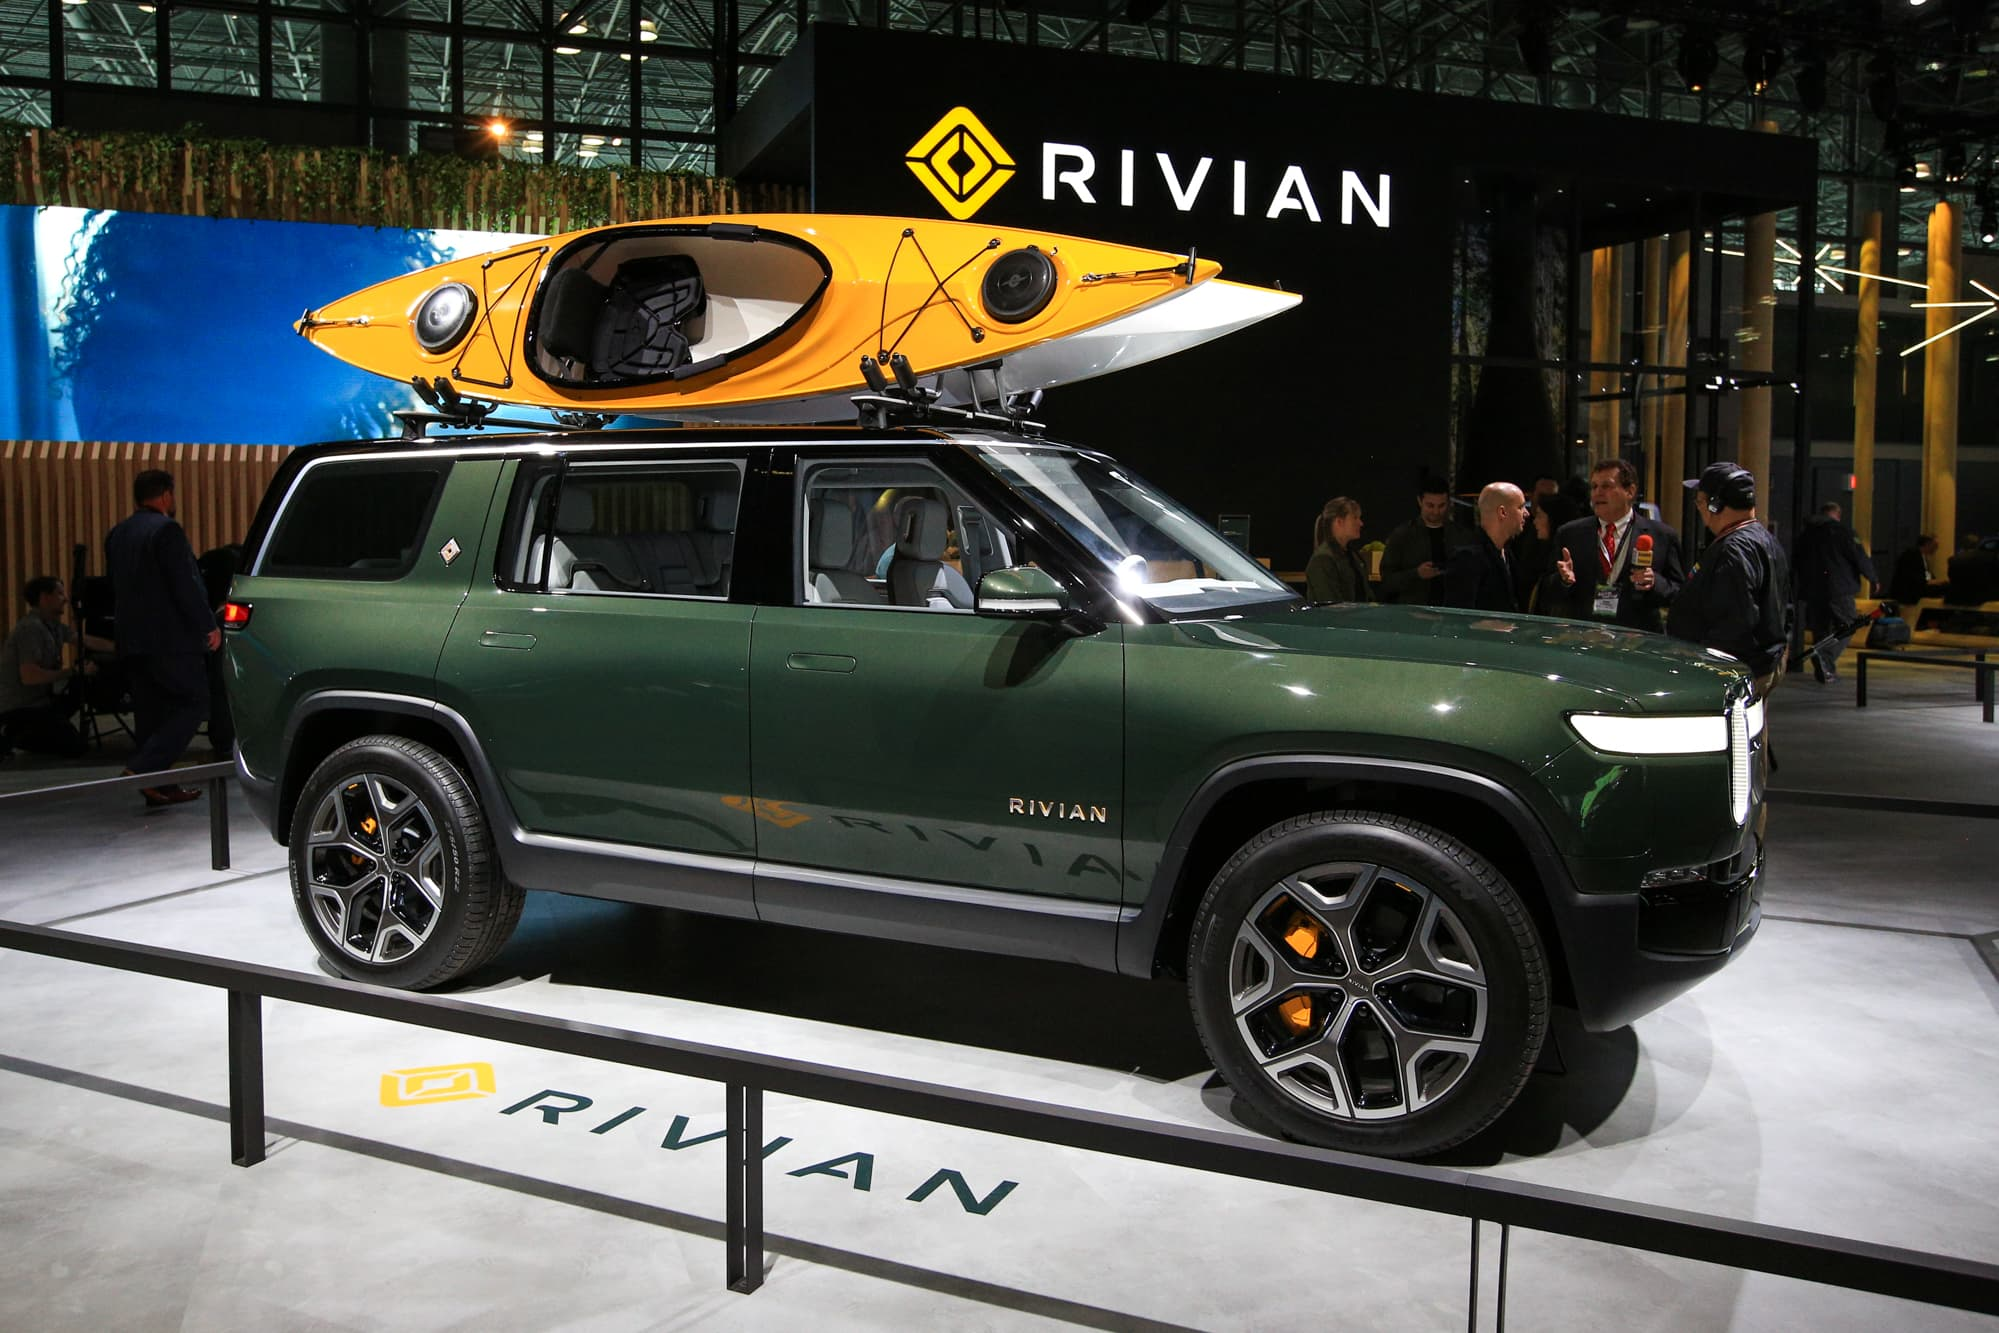 Tesla sues Rivian for allegedly stealing secrets, poaching employees 3